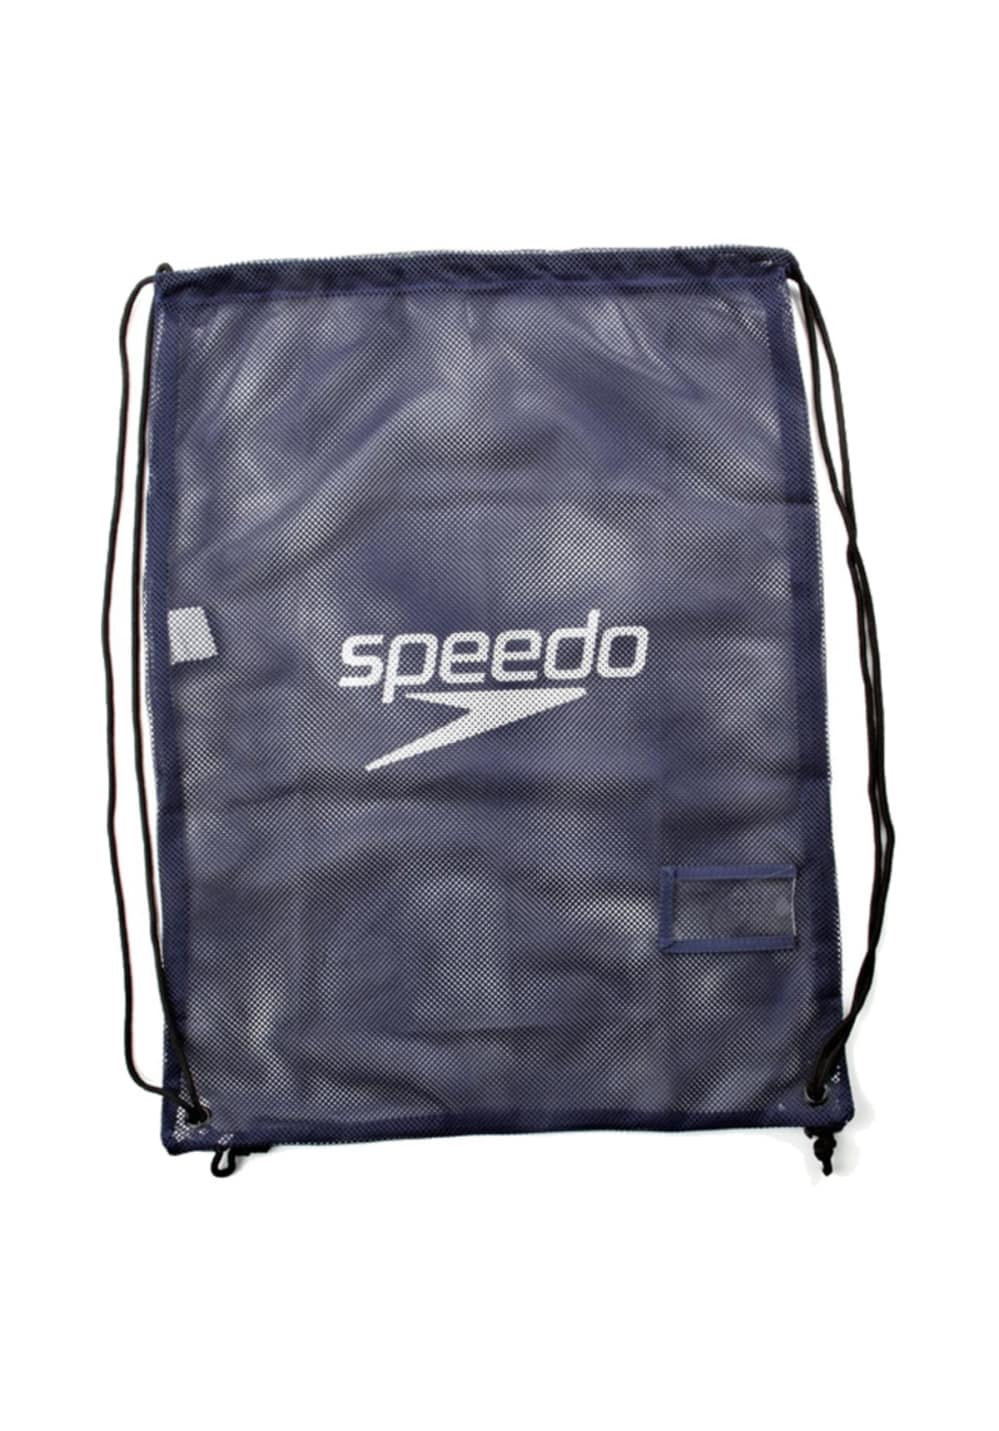 Speedo Equipment Mesh Bag Taschen - Blau, Gr. One Size